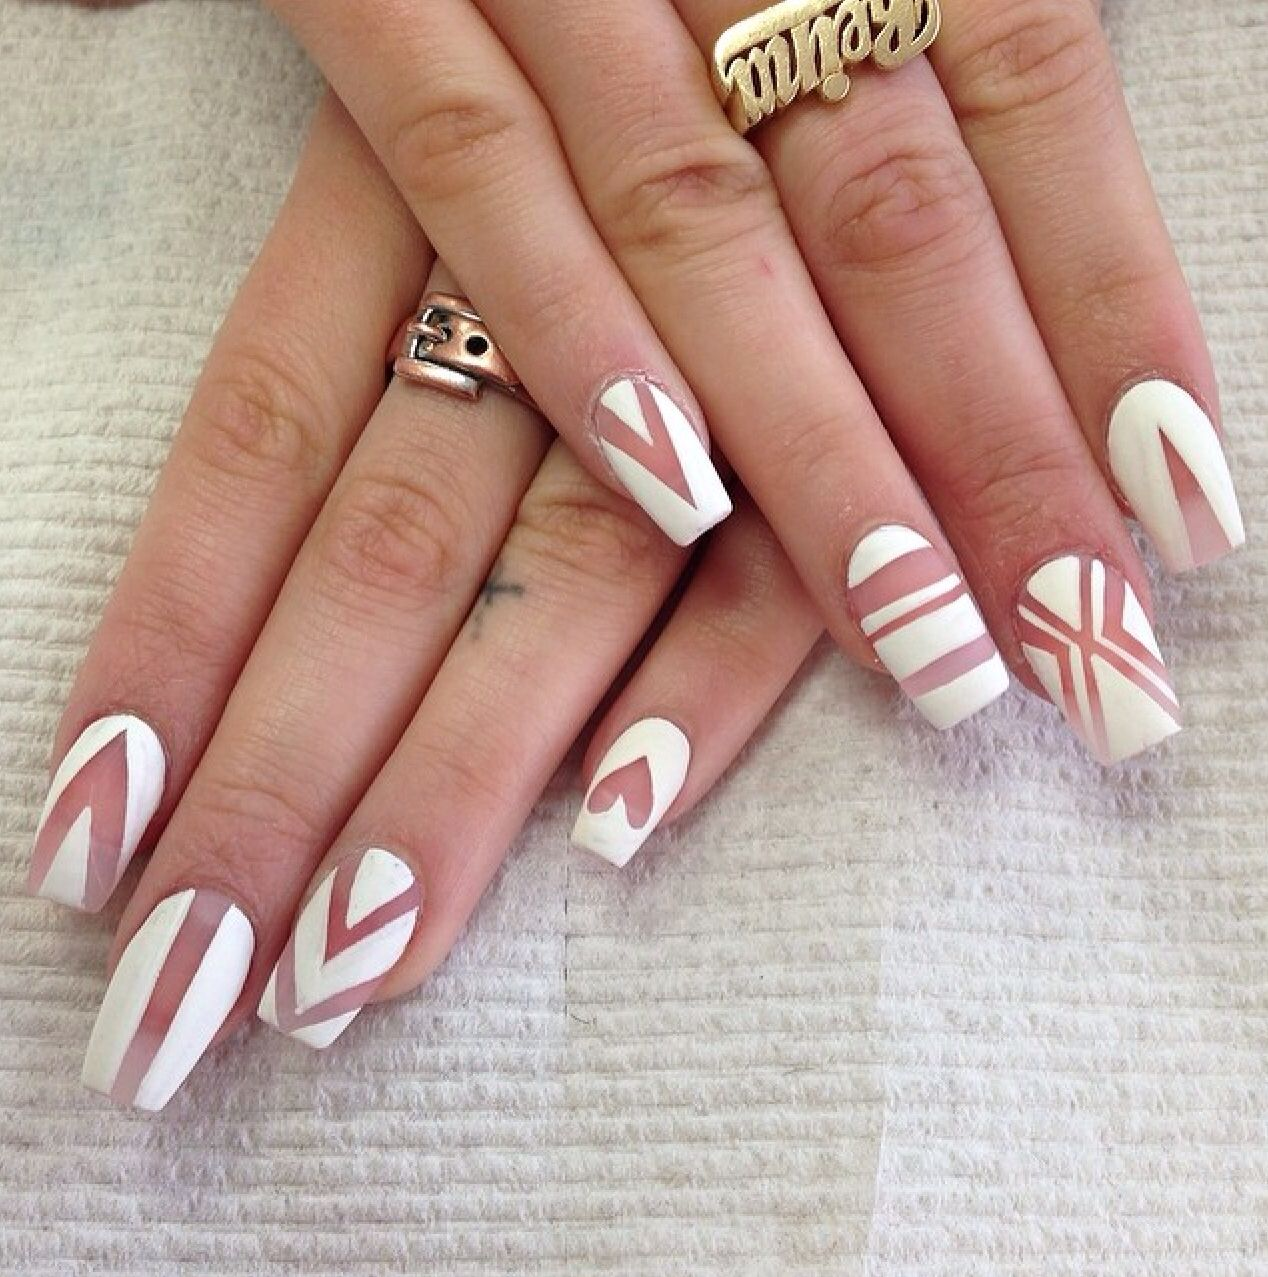 Pin by Kate Lane on All about those NAILS | Pinterest | Nail nail ...